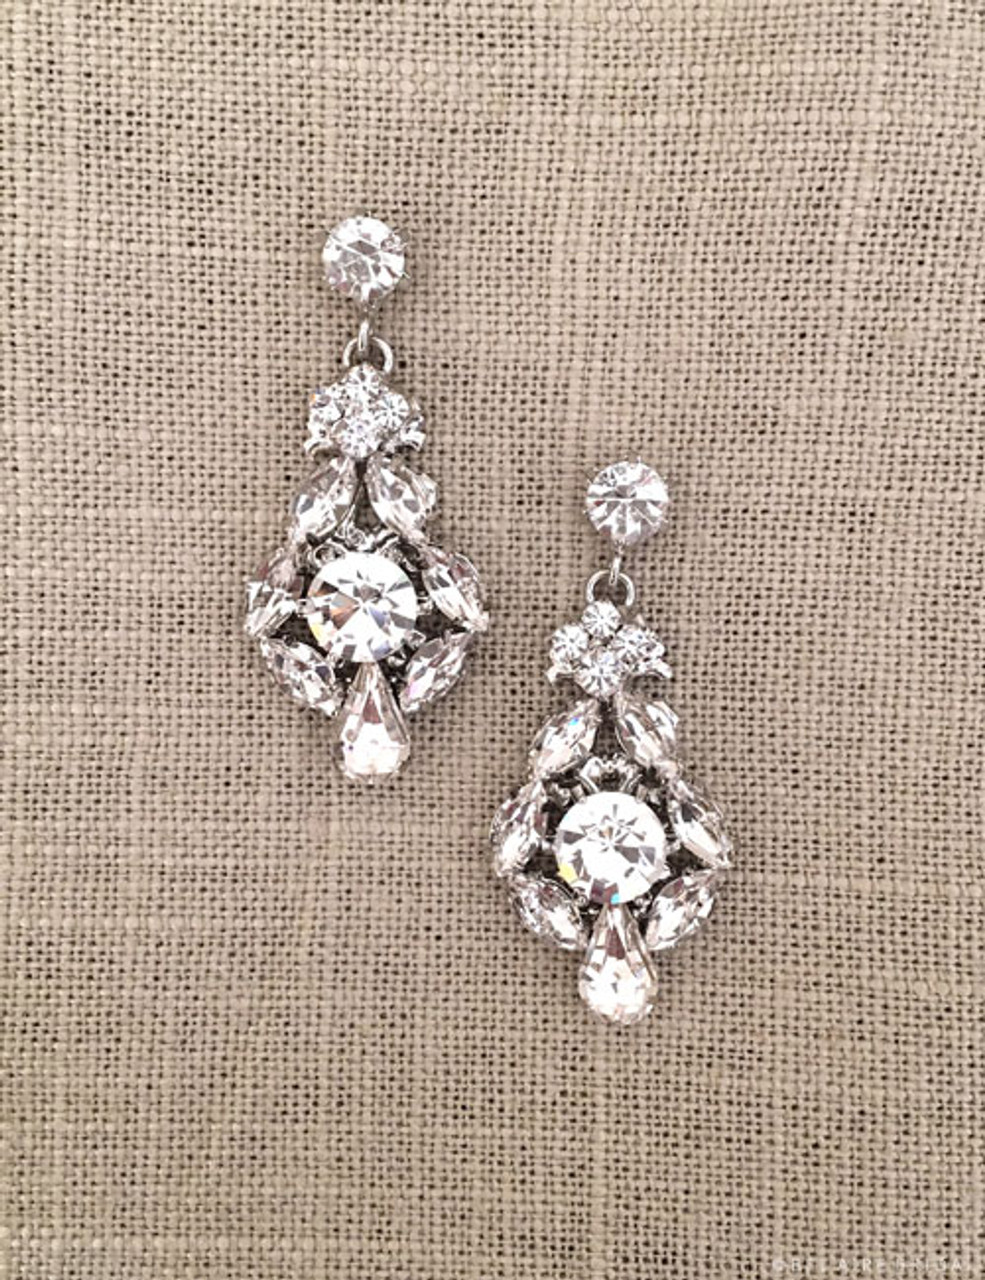 Bel Aire Bridal Earrings EA257 - Vintage-inspired drop earrings with large round stones